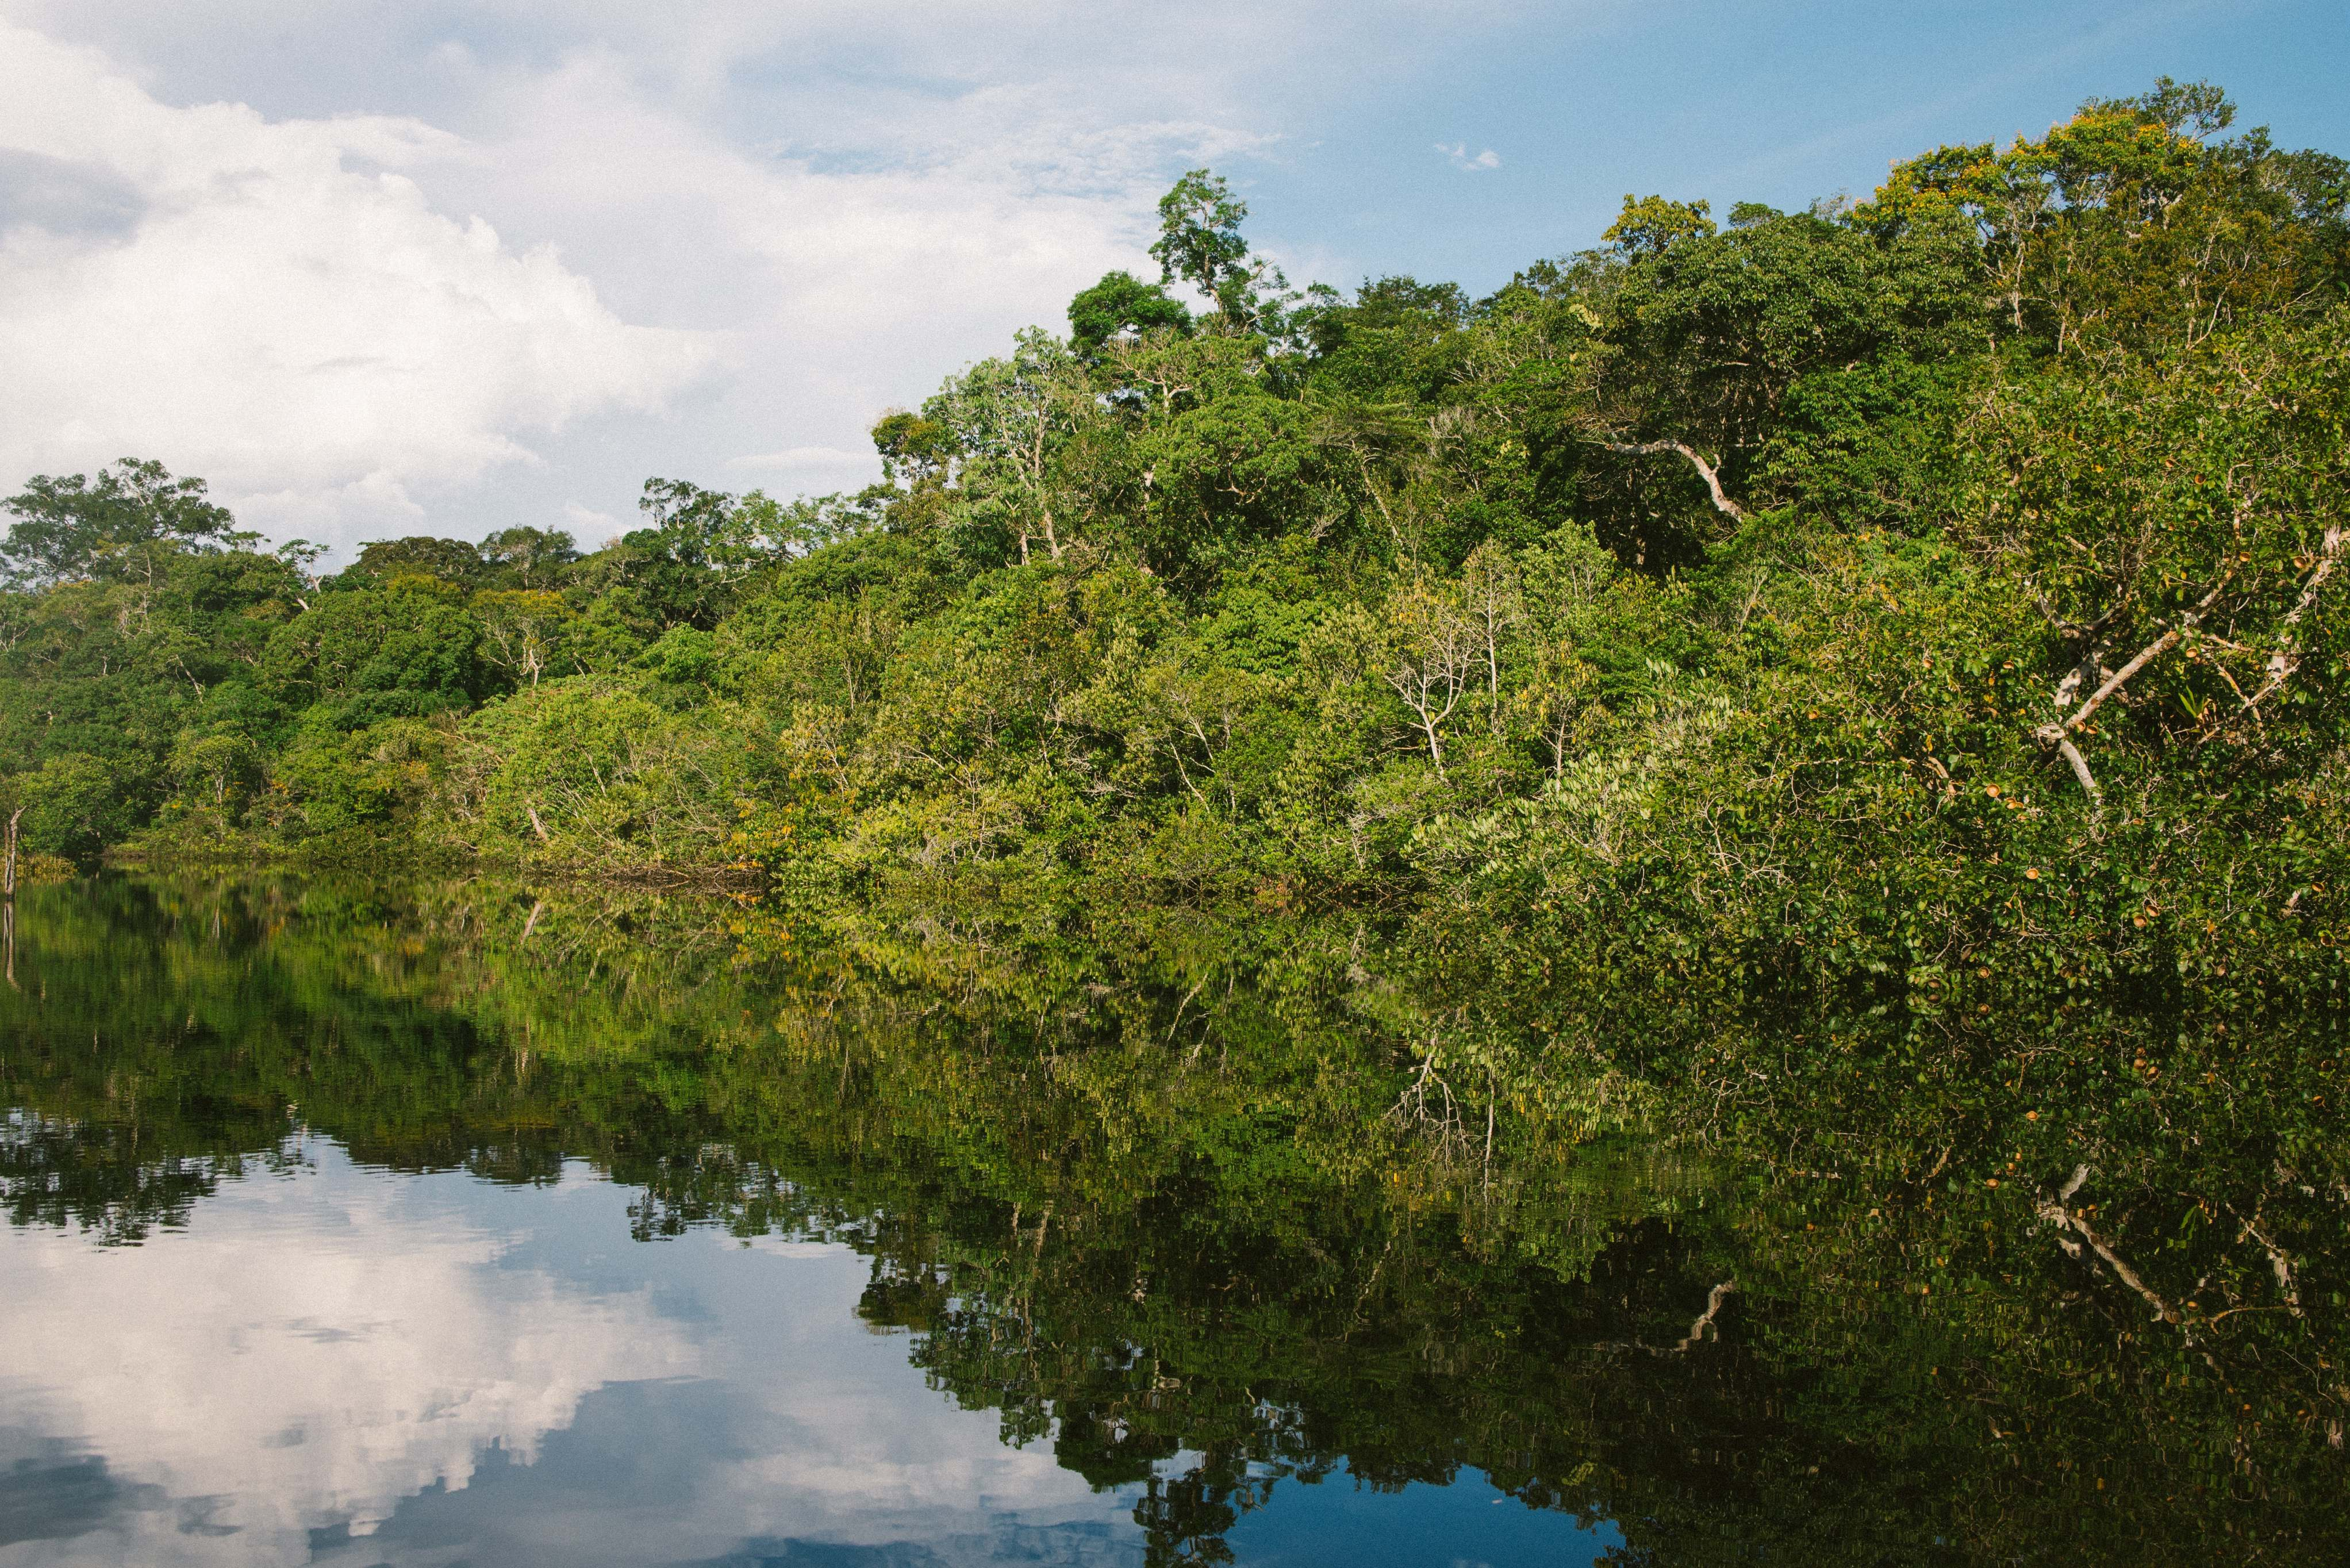 An Amazon rainforest river scene